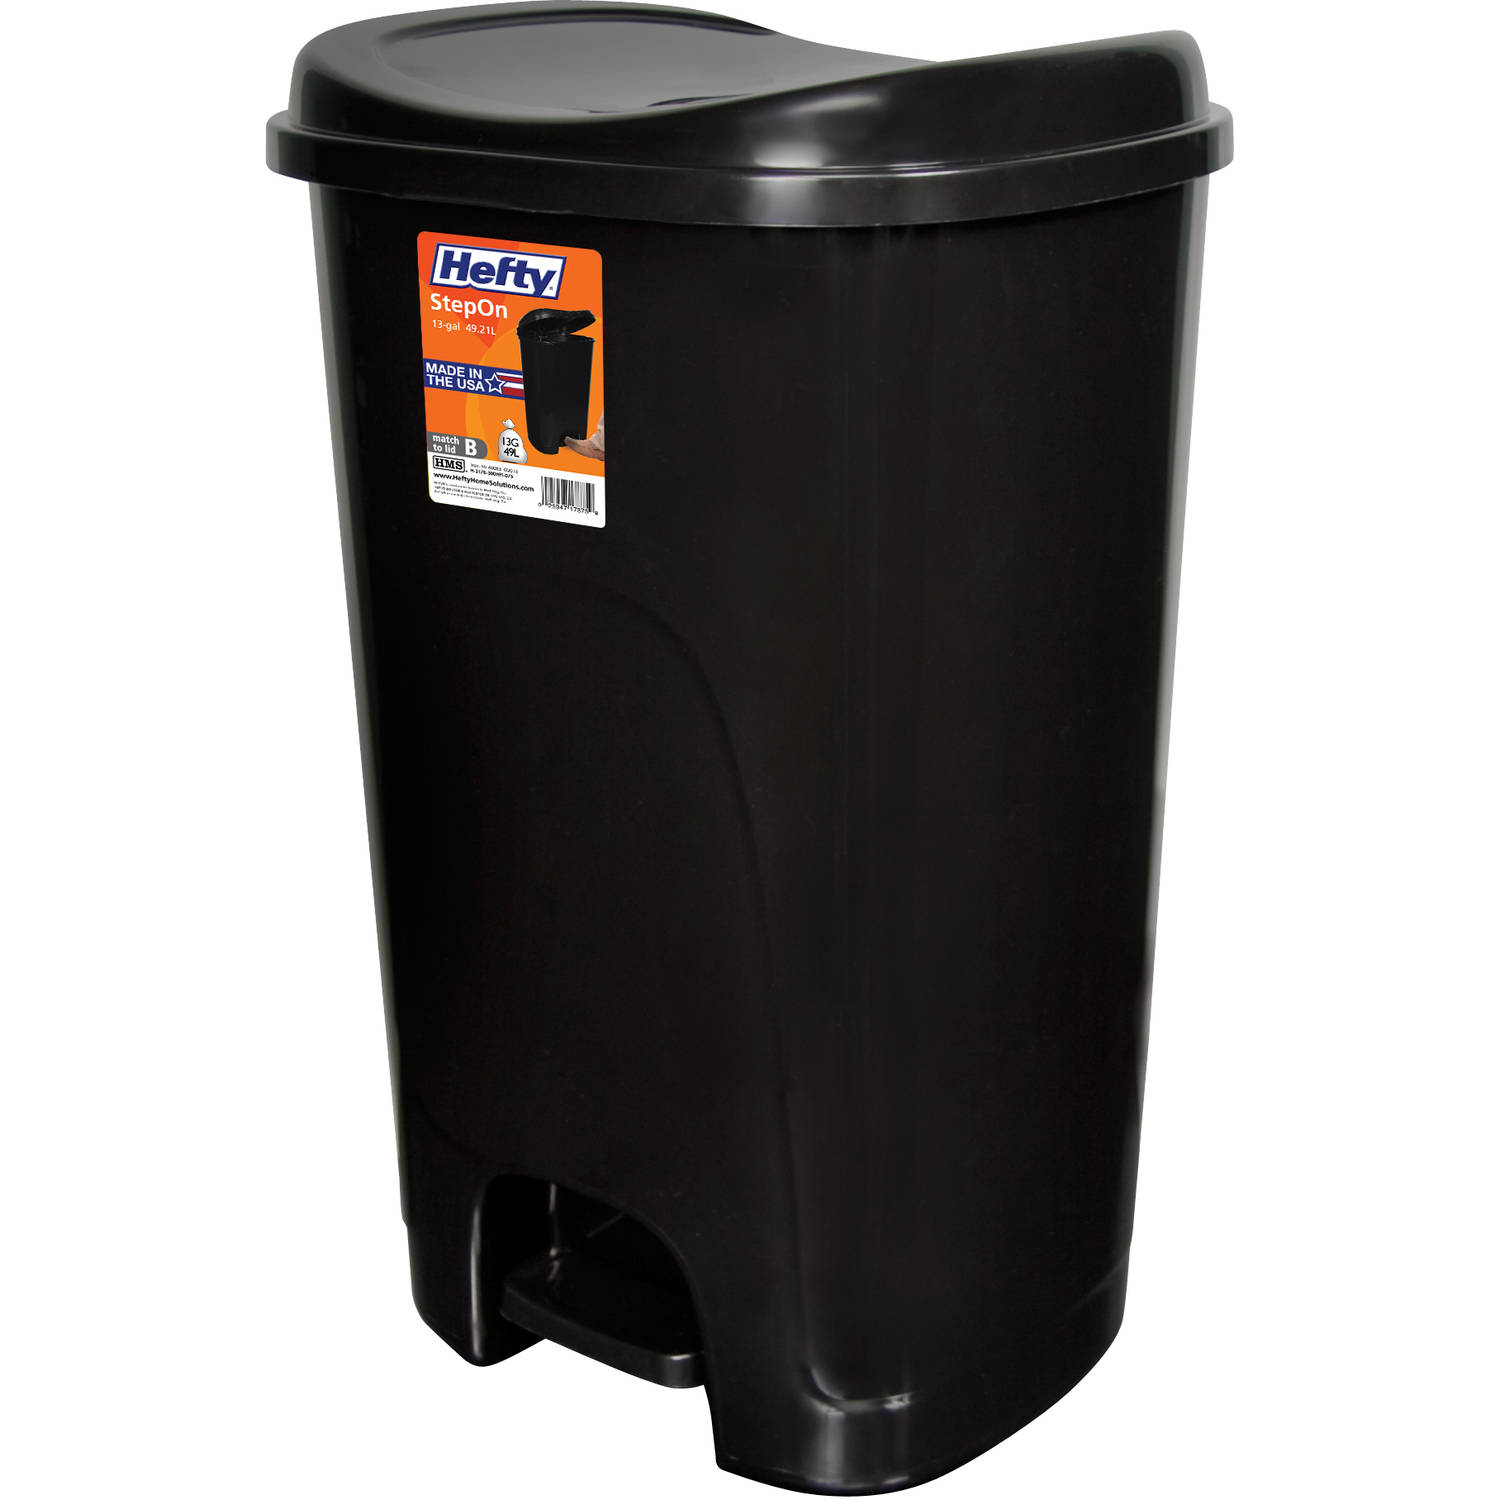 Hefty Step On 13 Gallon Trash Can, Black